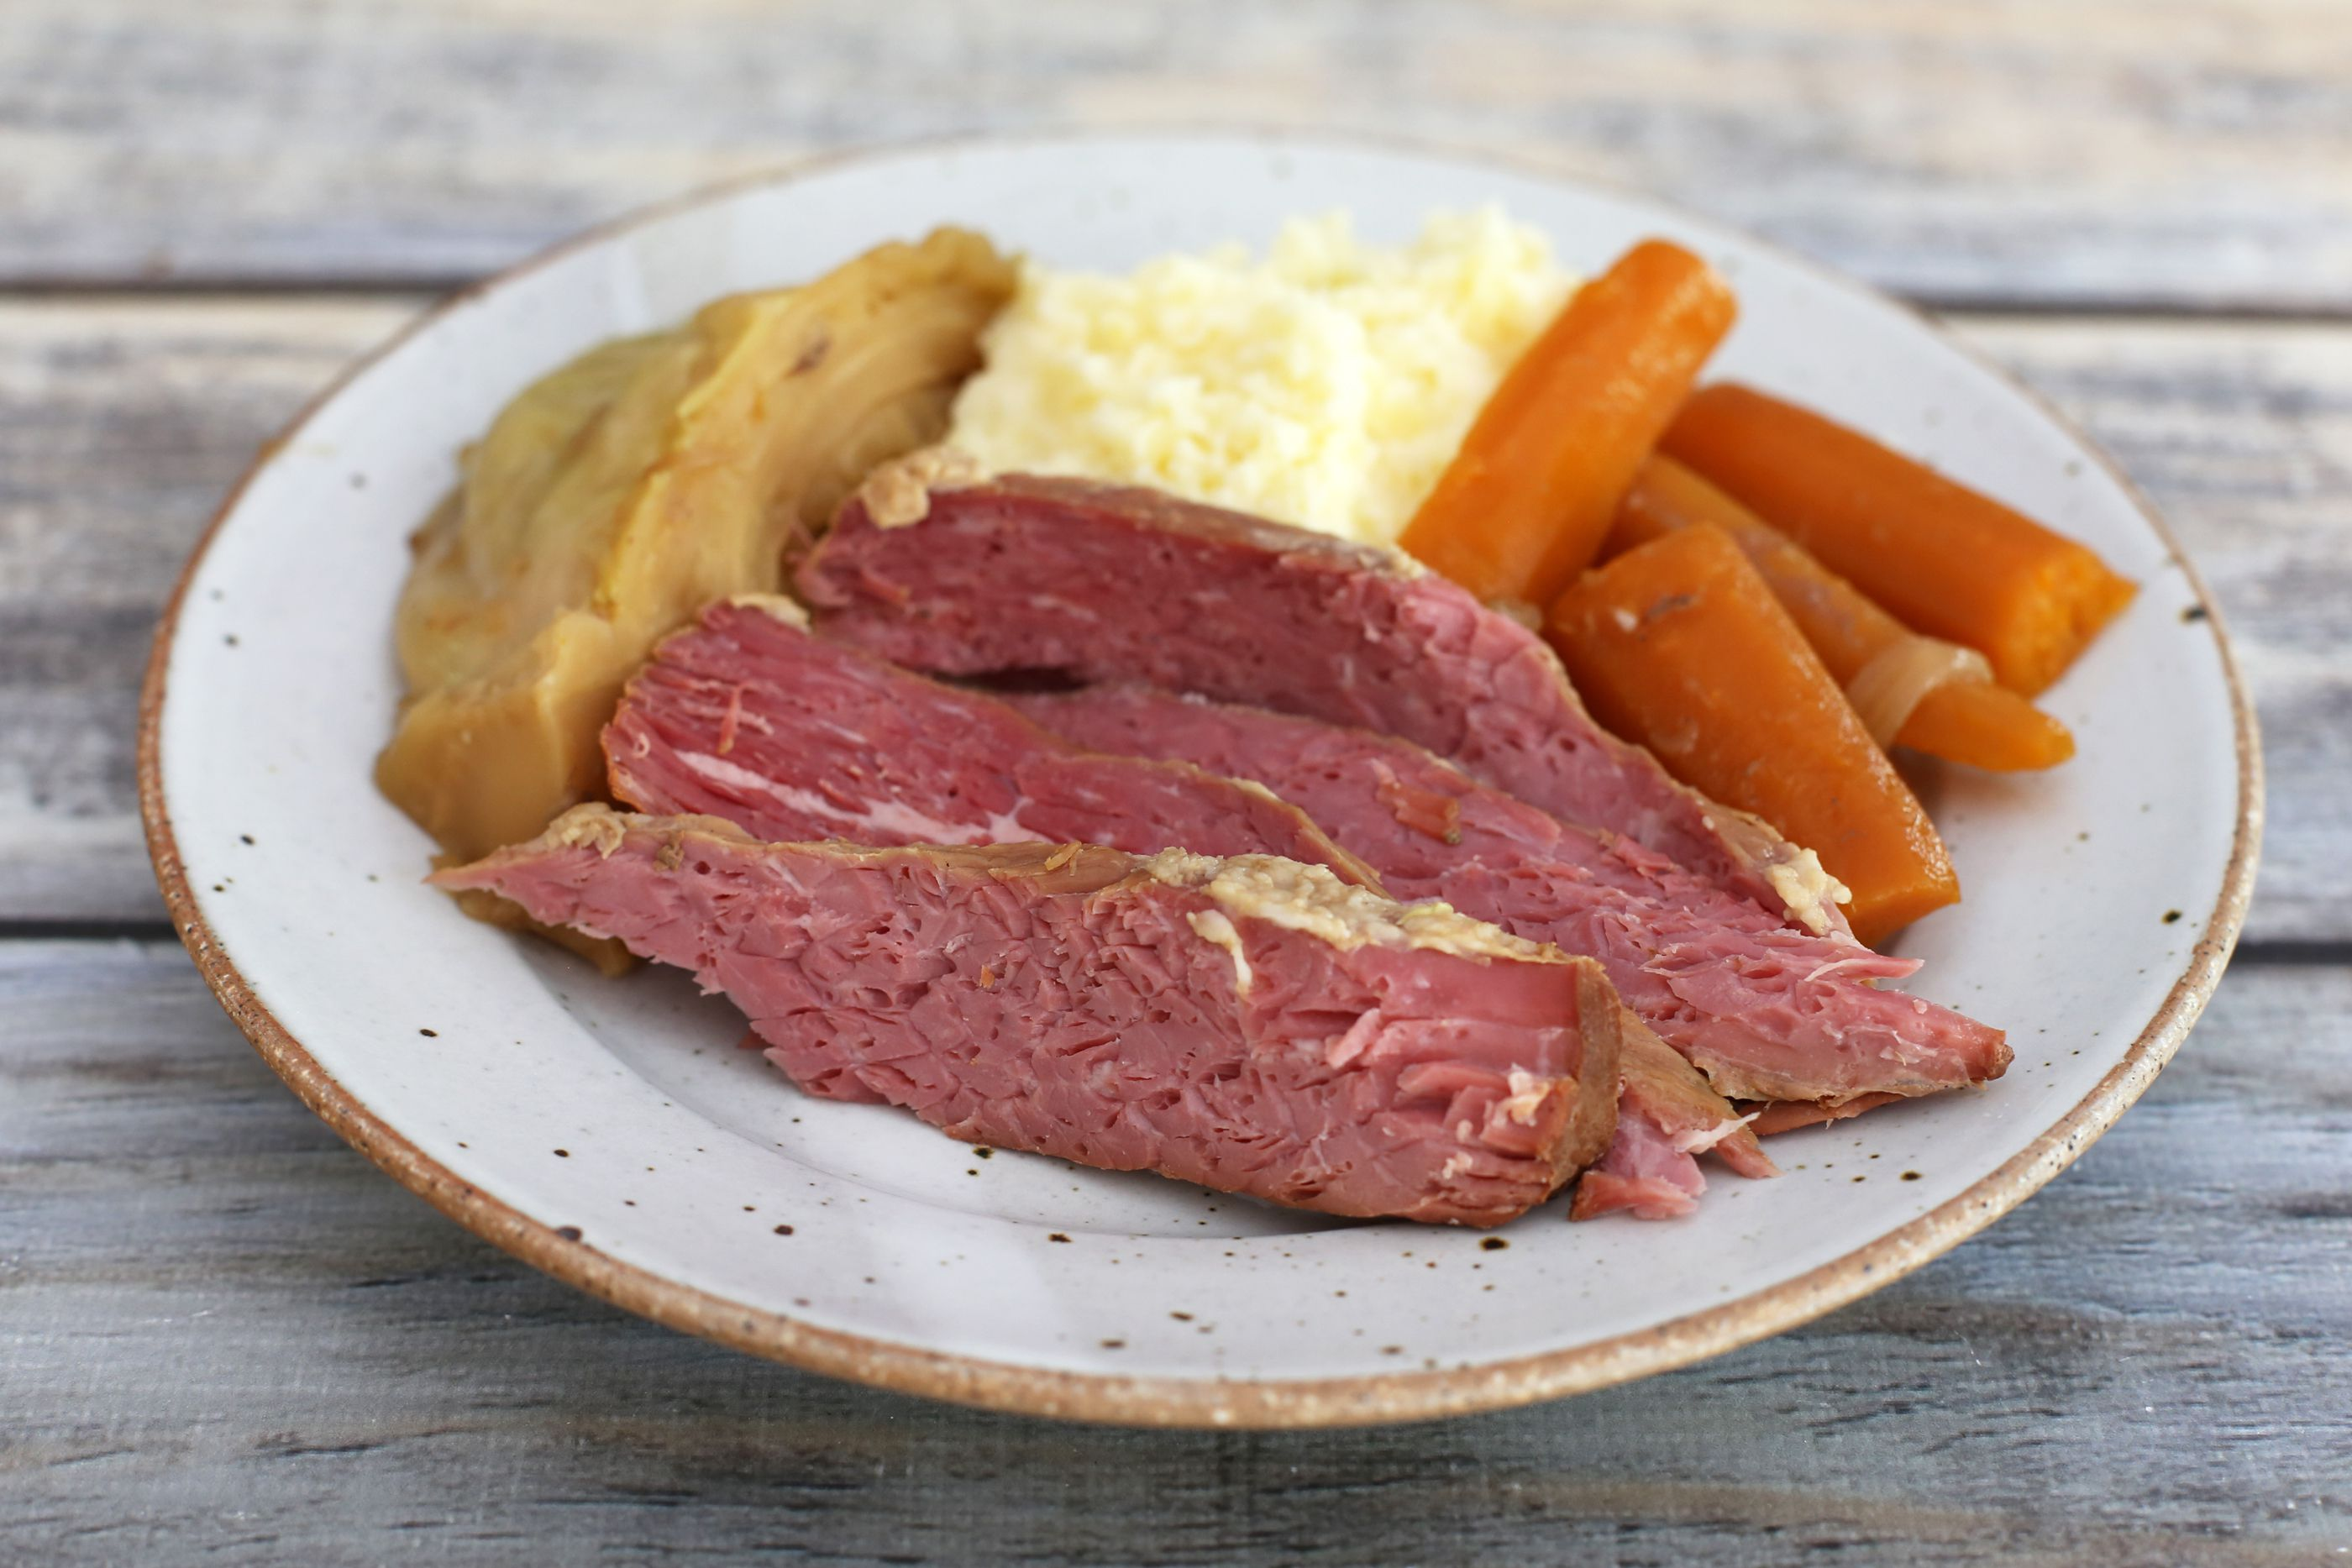 How to Make Homemade Corned Beef Recipe (Home Cured)